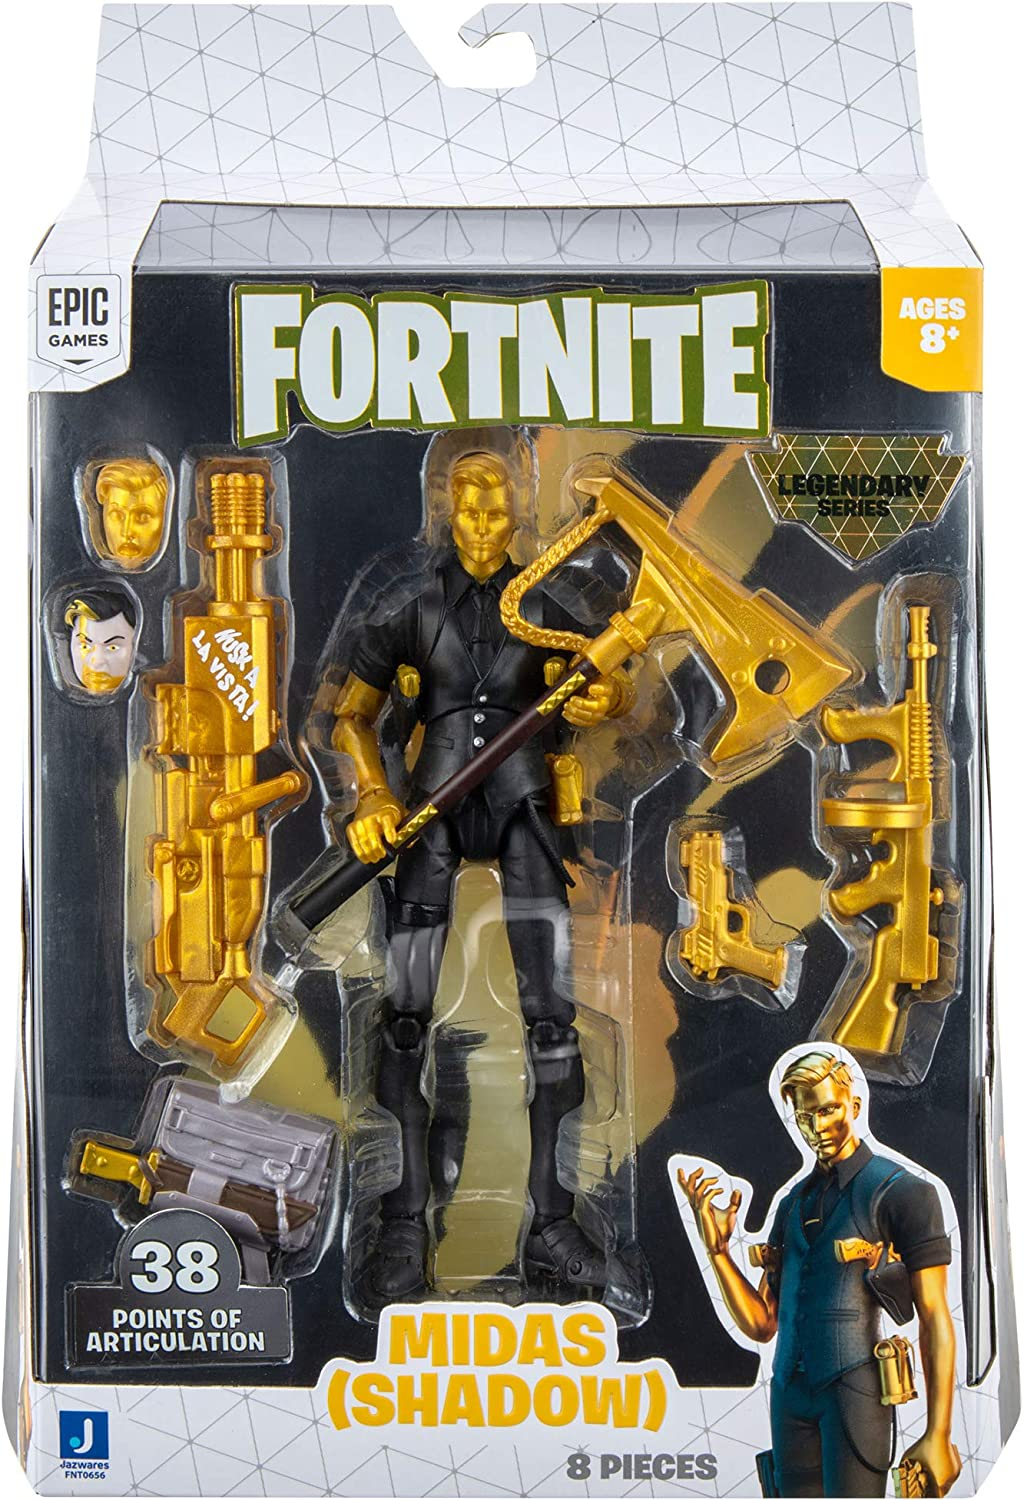 Fortnite Legendary Series Action Figures Amazon Com Fortnite Legendary Series Midas 6 Inch Highly Detailed Figure With Harvesting Tool Weapons Back Bling And Interchangeable Faces Other Styles Include Midas Dark Voyager And More Toys Games